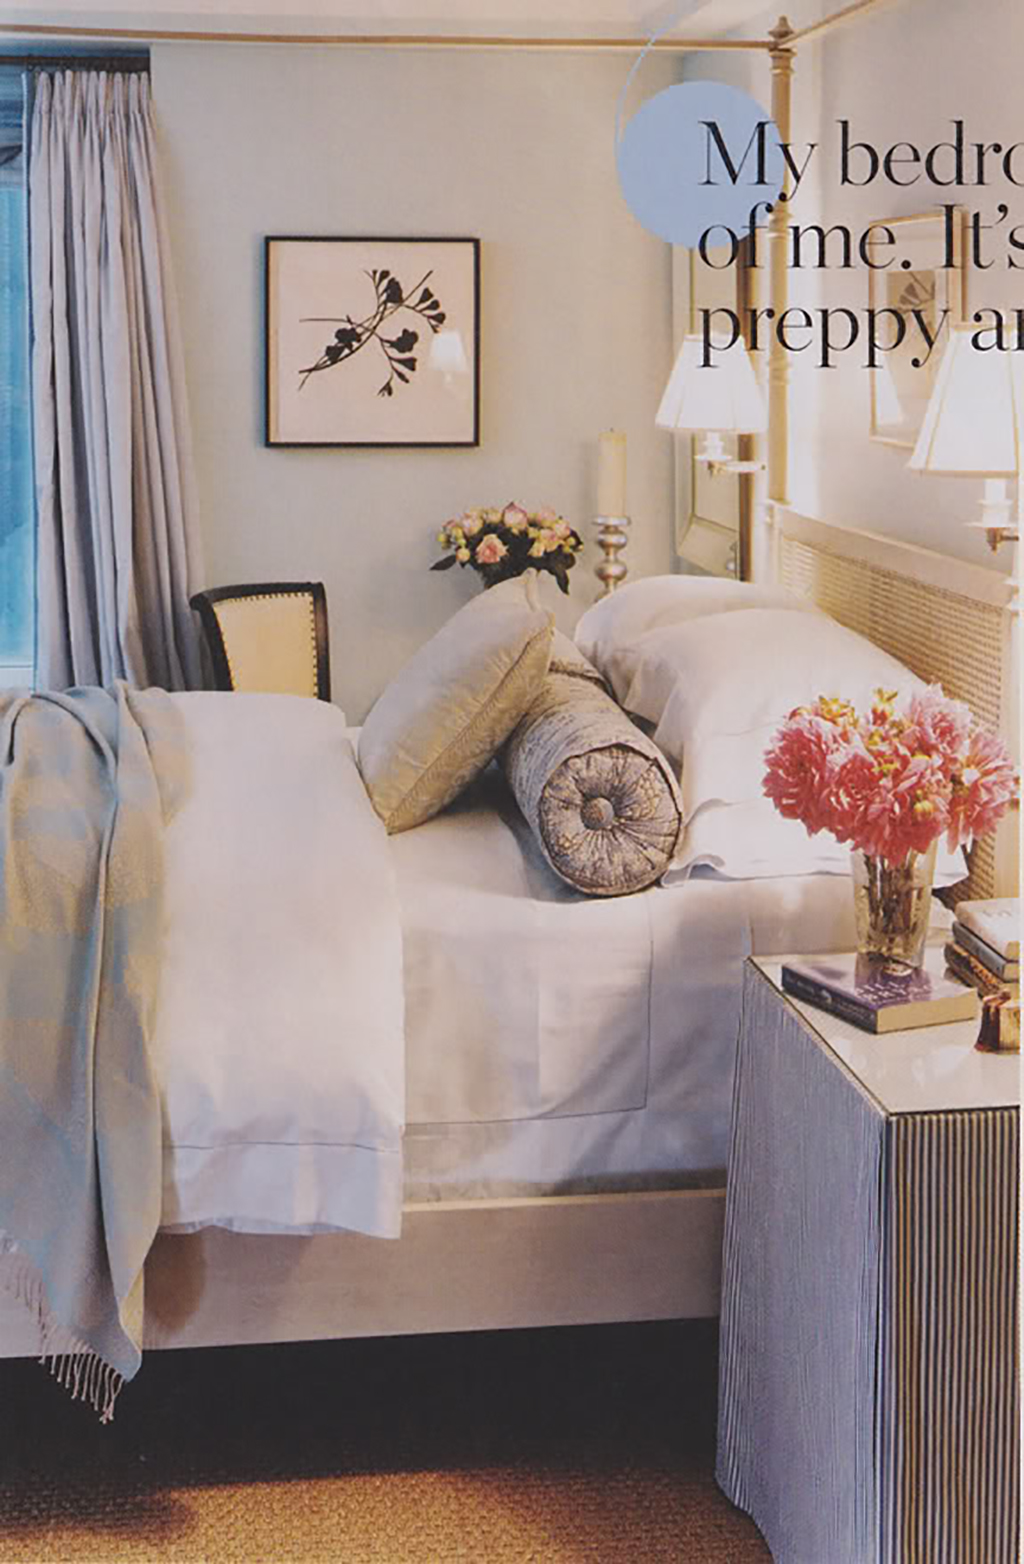 ivanka trump bedroom via little green notebook